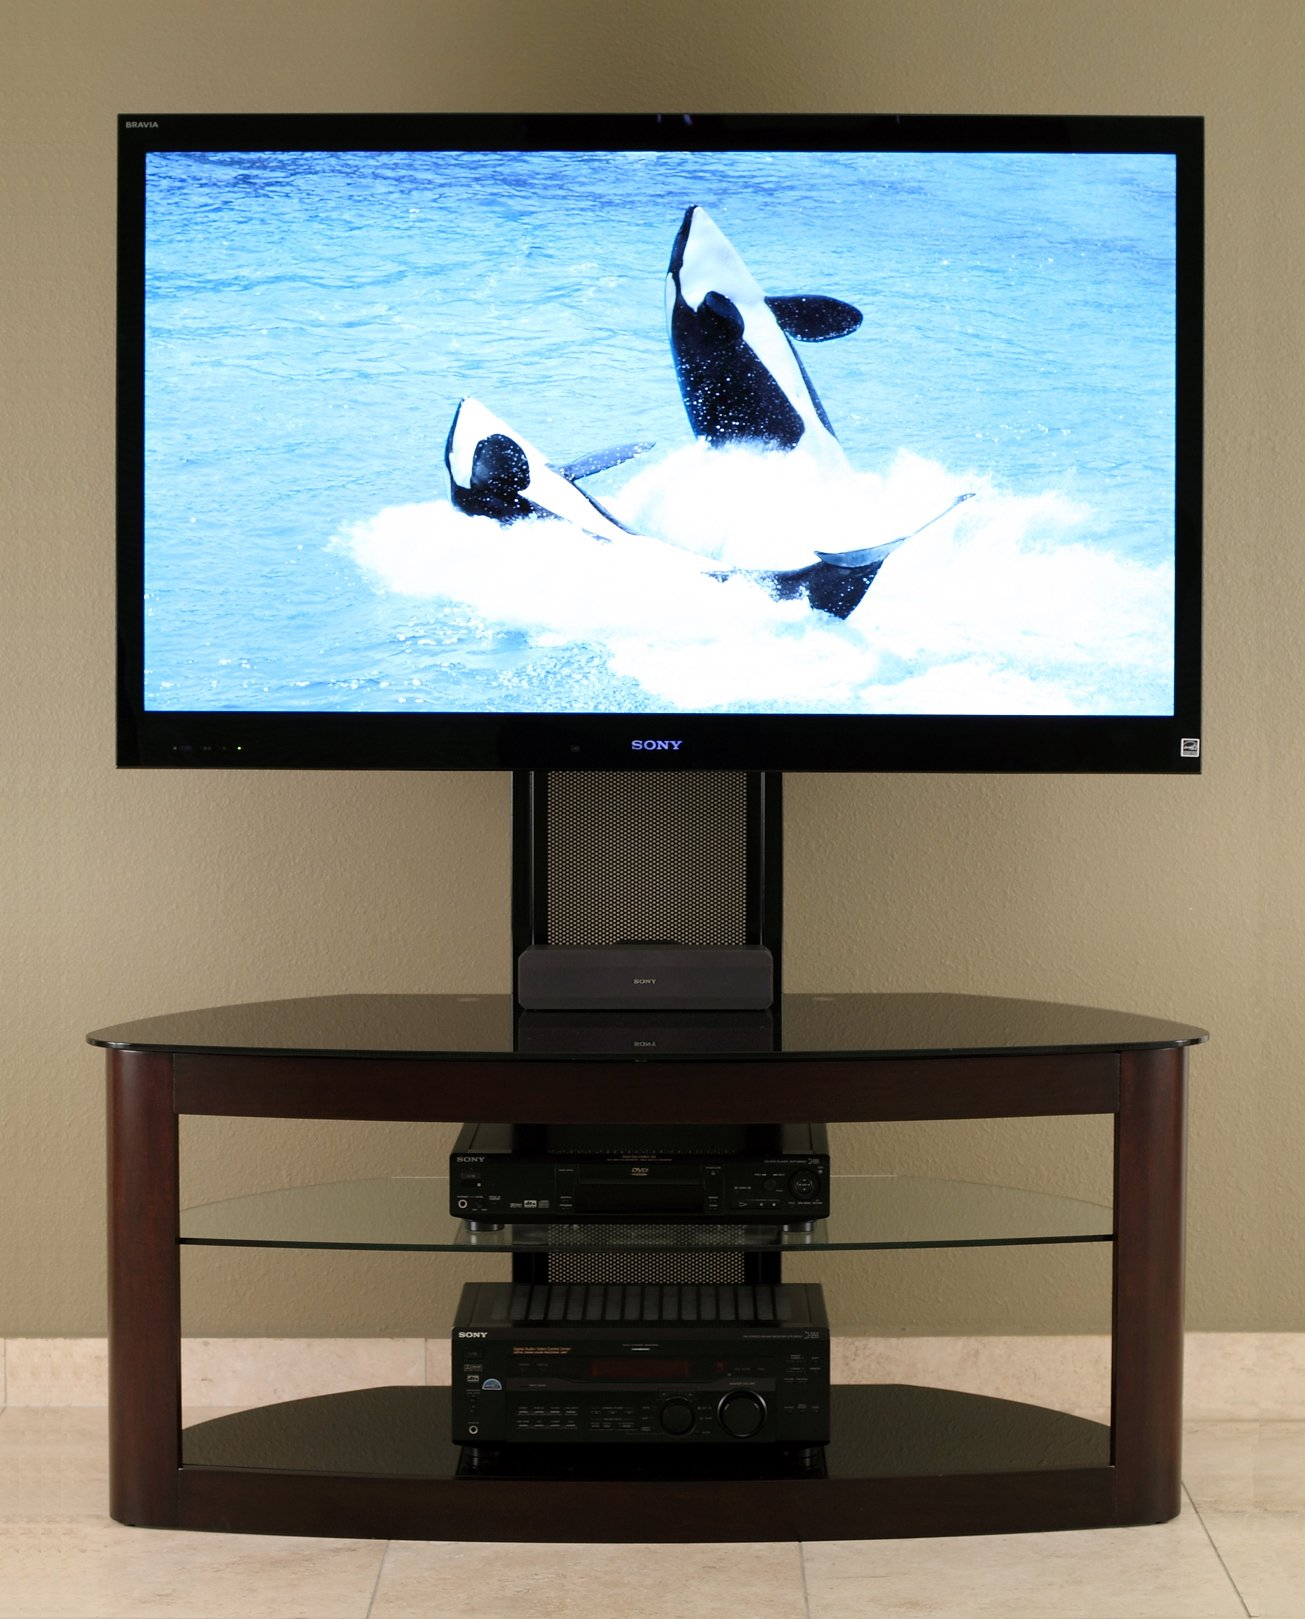 TransDeco TV Stand with Universal Mounting System for 35 to 65-Inch Plasma/LED/LCD TV by TransDeco (Image #2)